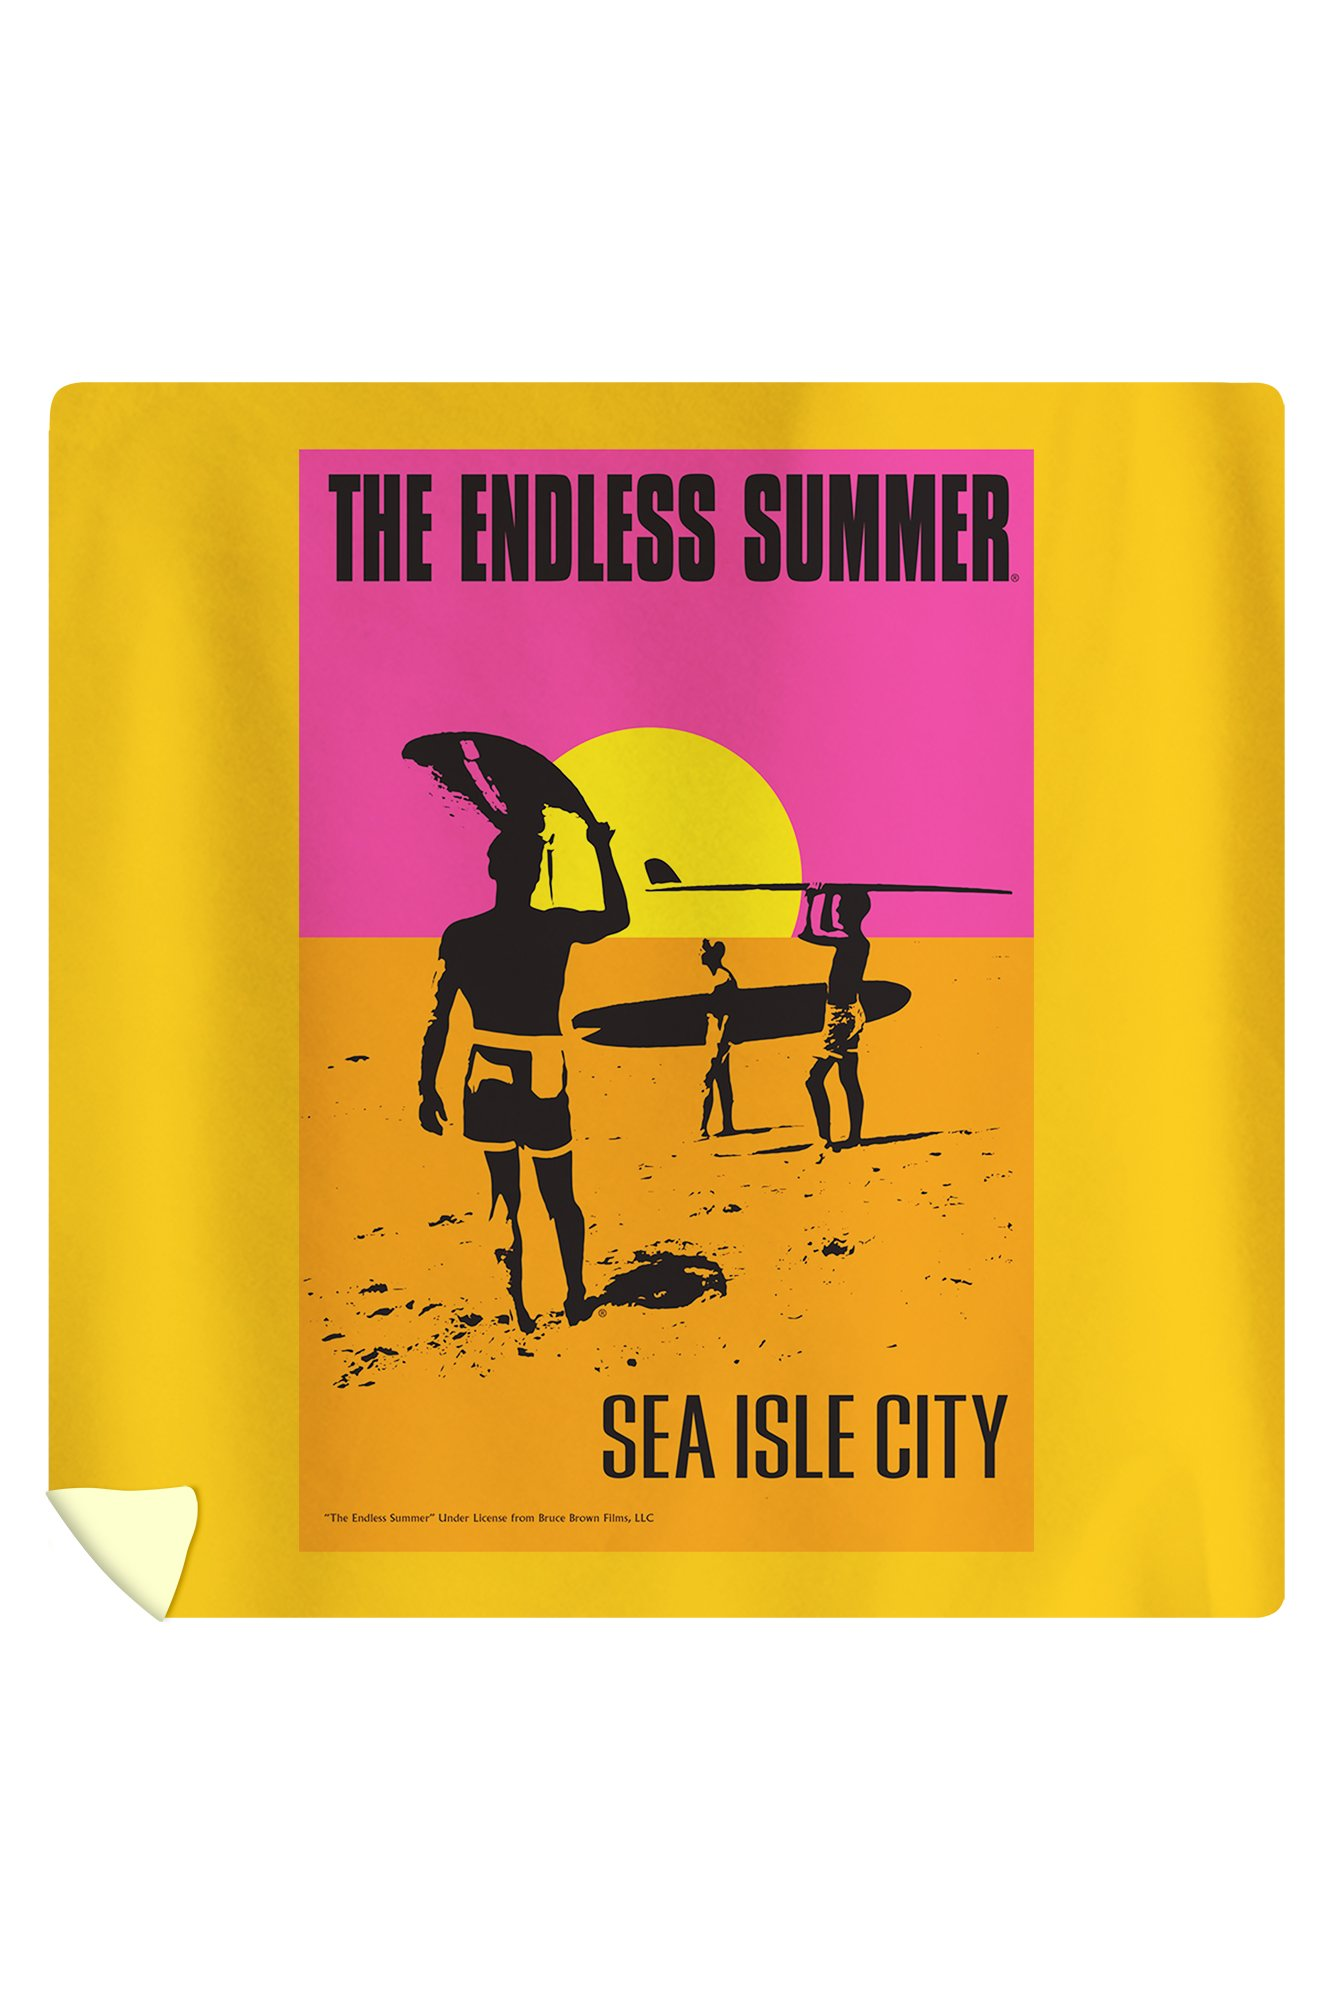 Sea Isle City, New Jersey - Endless Summer - Original Movie Poster (88x88 Queen Microfiber Duvet Cover)